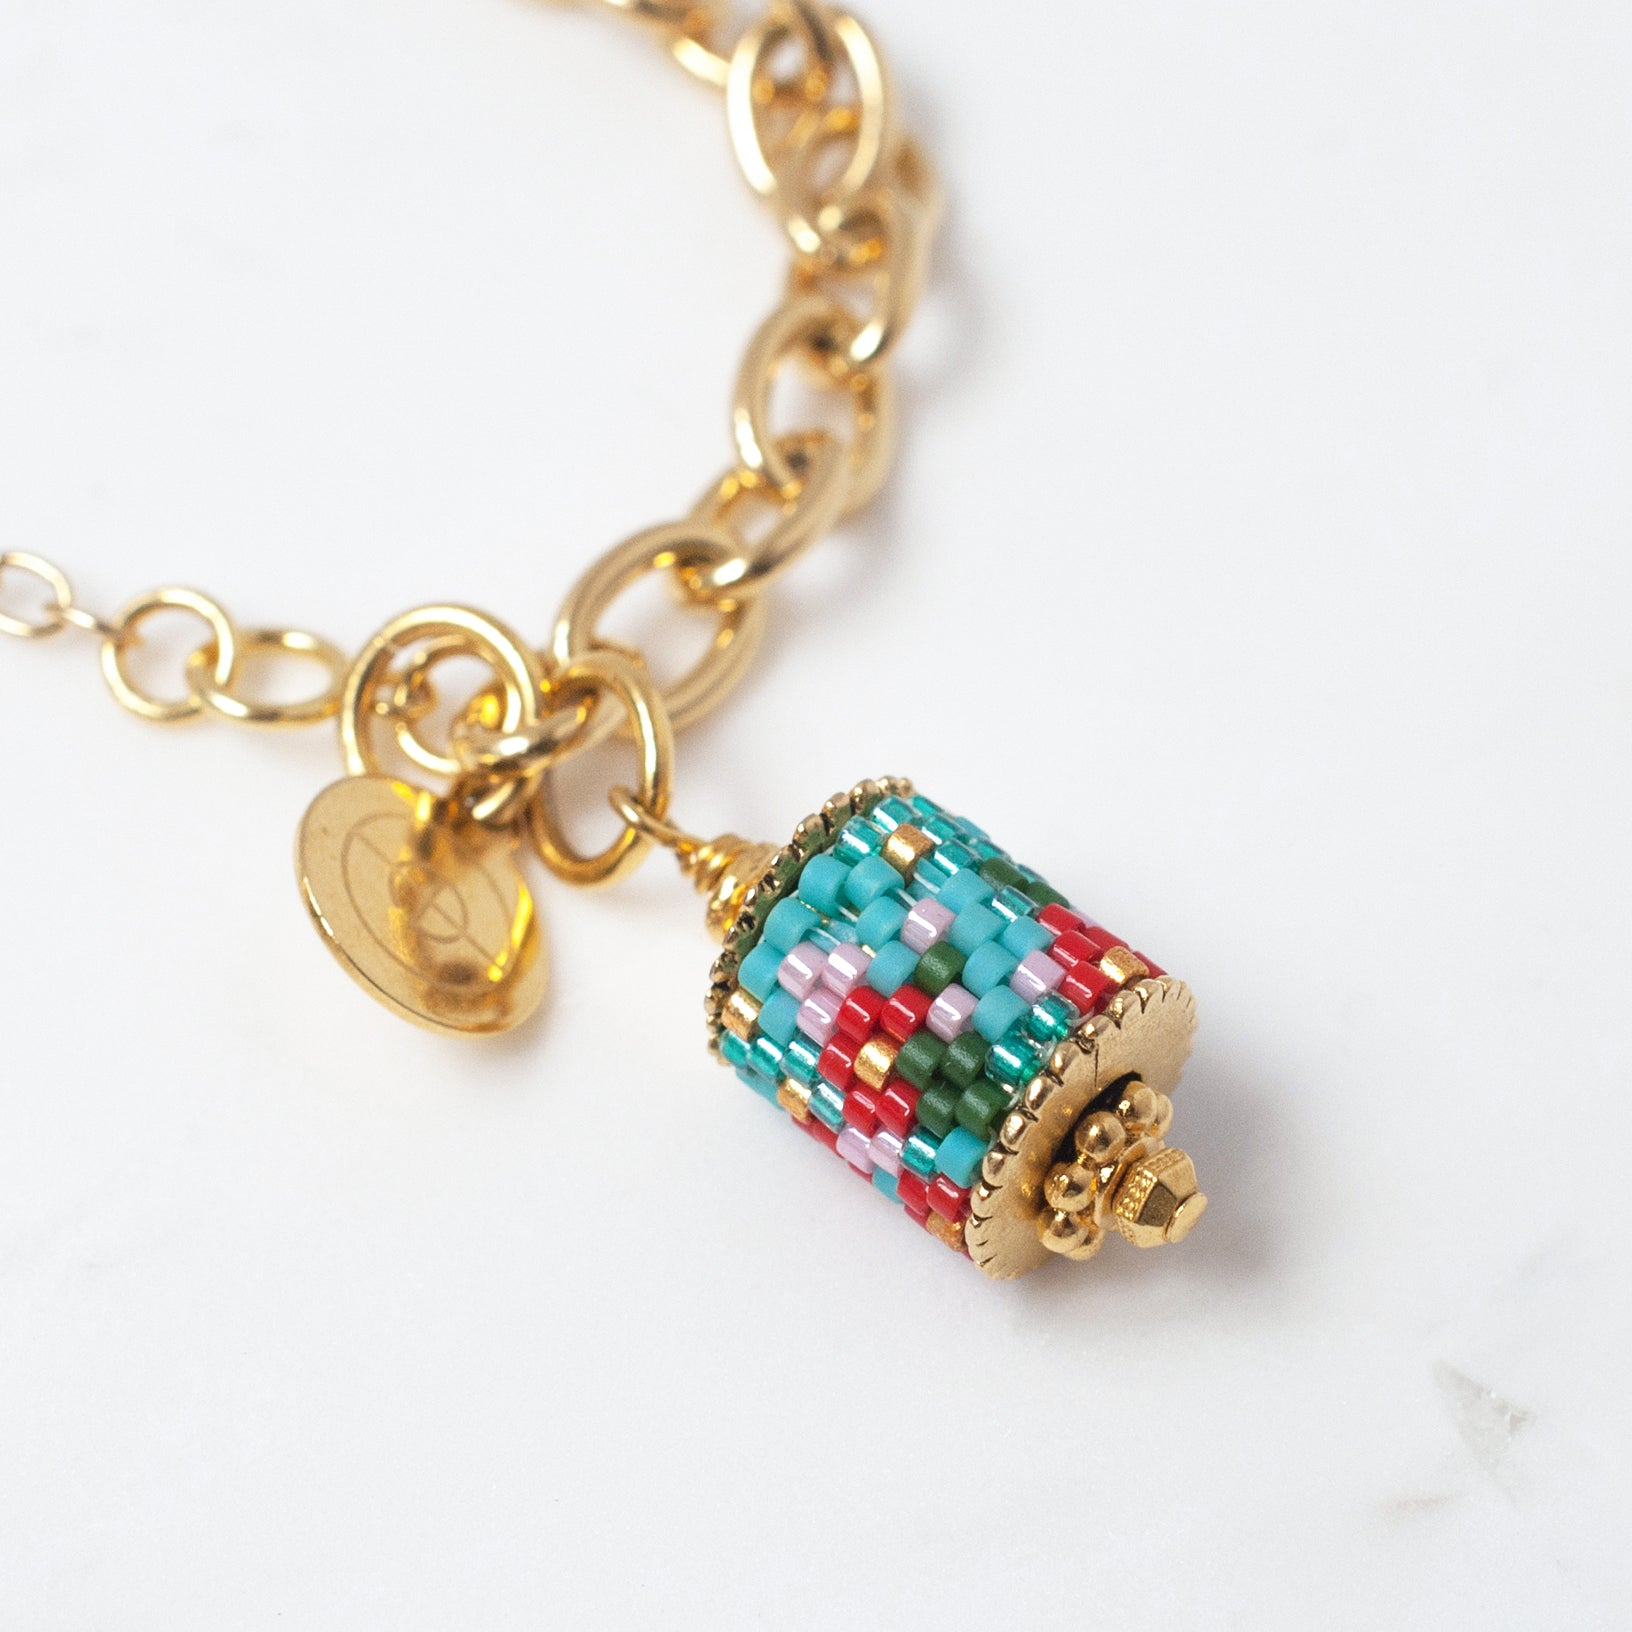 Modern Peranakan charm bracelet blue ethical jewelry